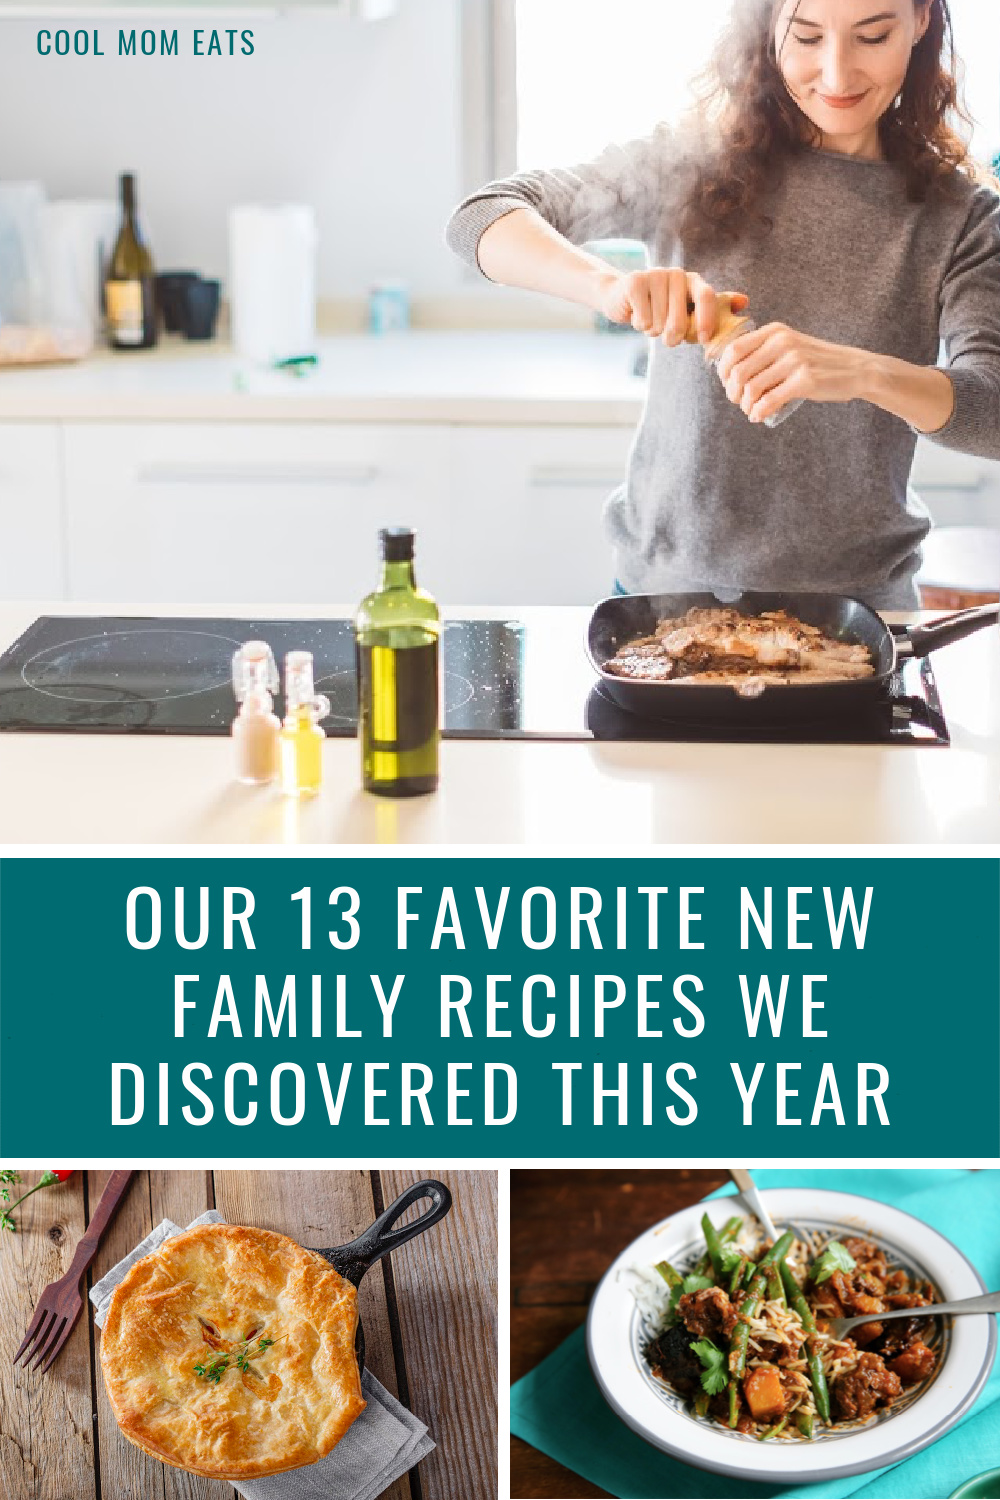 These are the favorite recipes we discovered this year for family dinners...and we'll be making again next year! | Cool Mom Eats